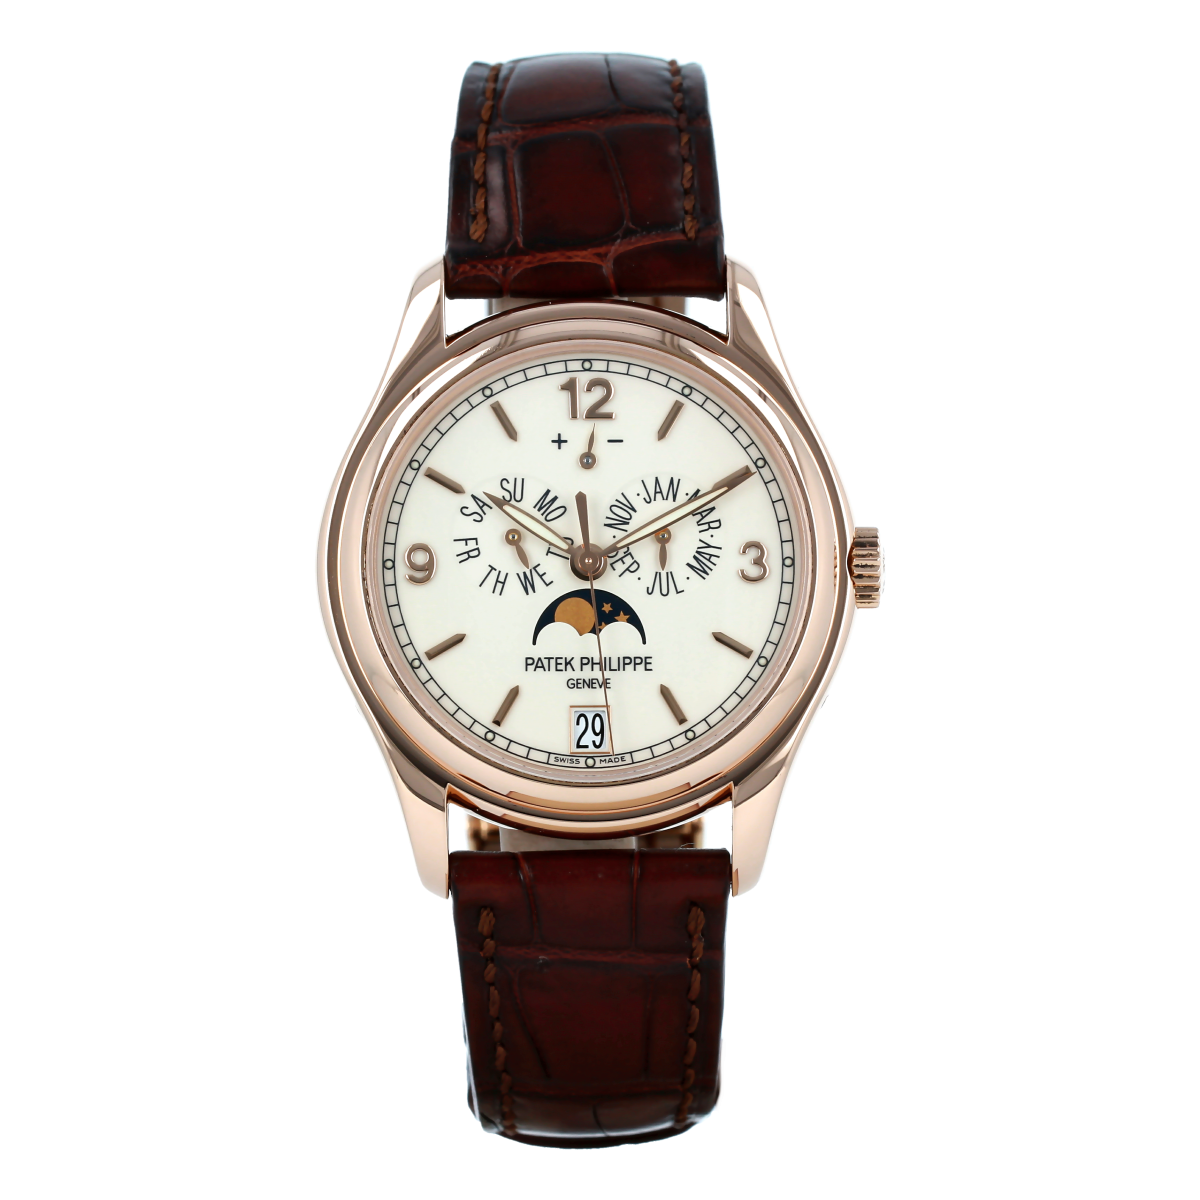 Patek Philippe Complications 5146R Annual Calendar *Like New* | Buy pre-owned Patek Philippe watch